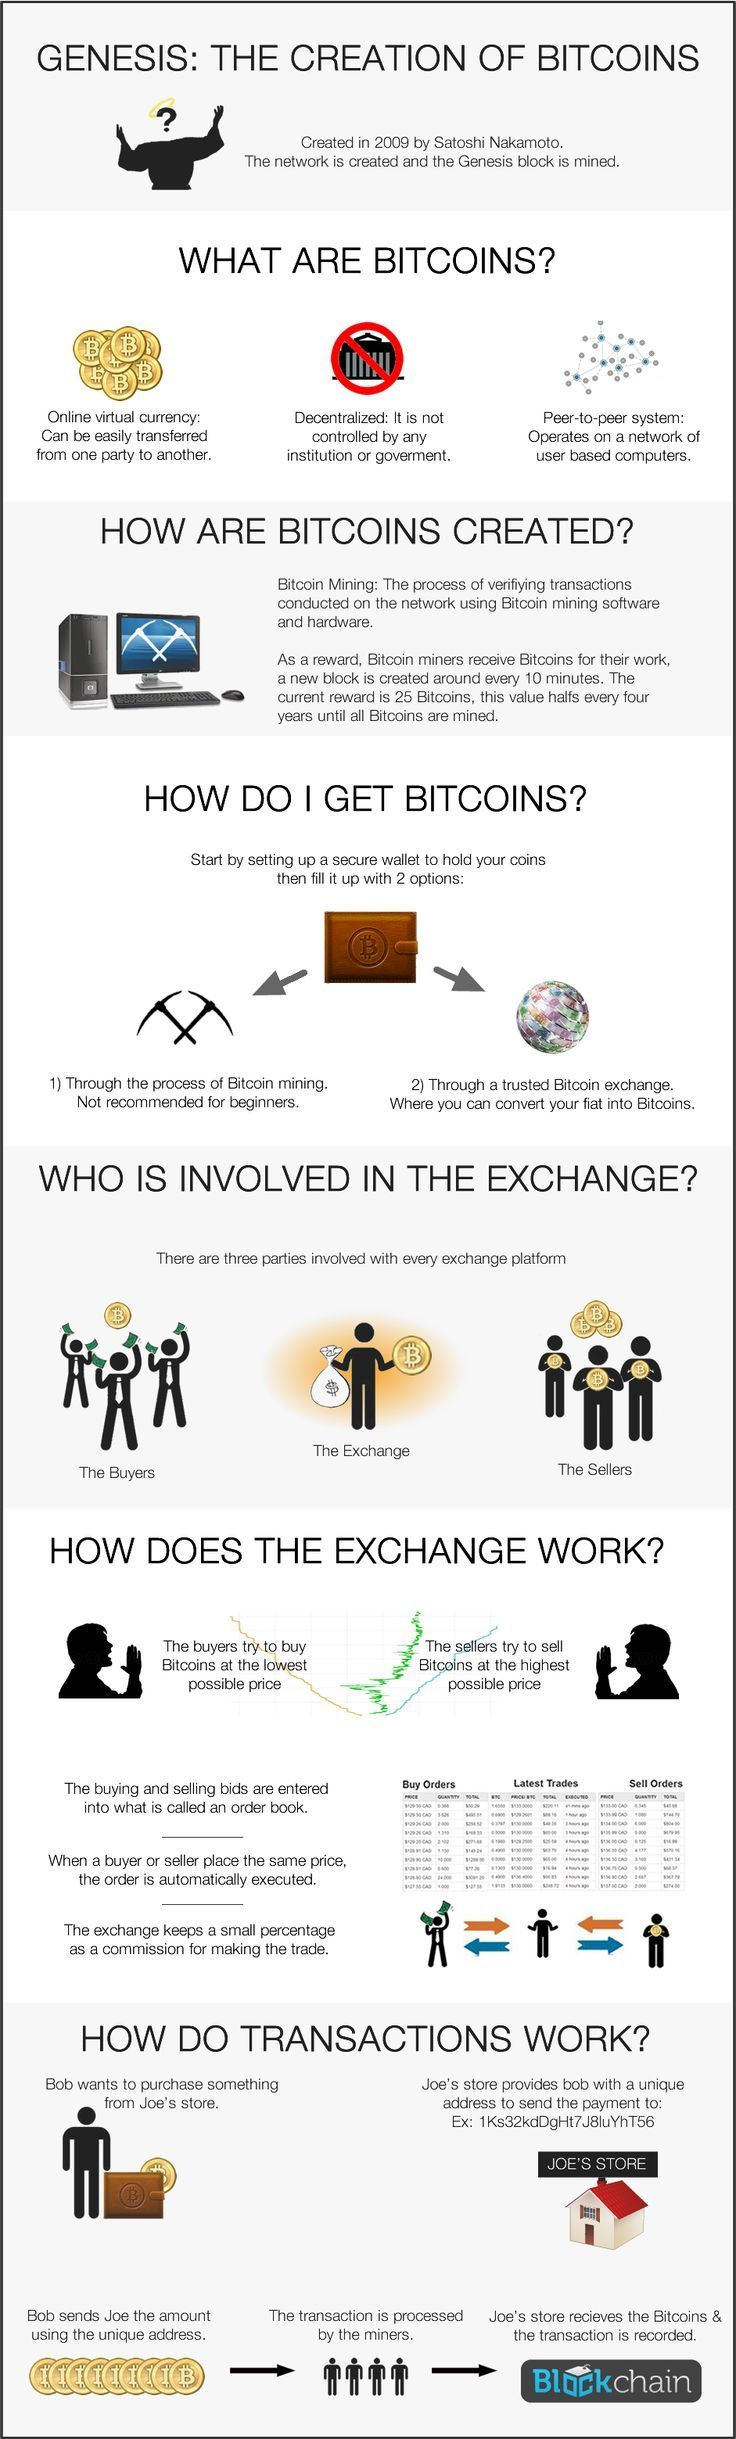 The Creation of Bitcoins Infographic